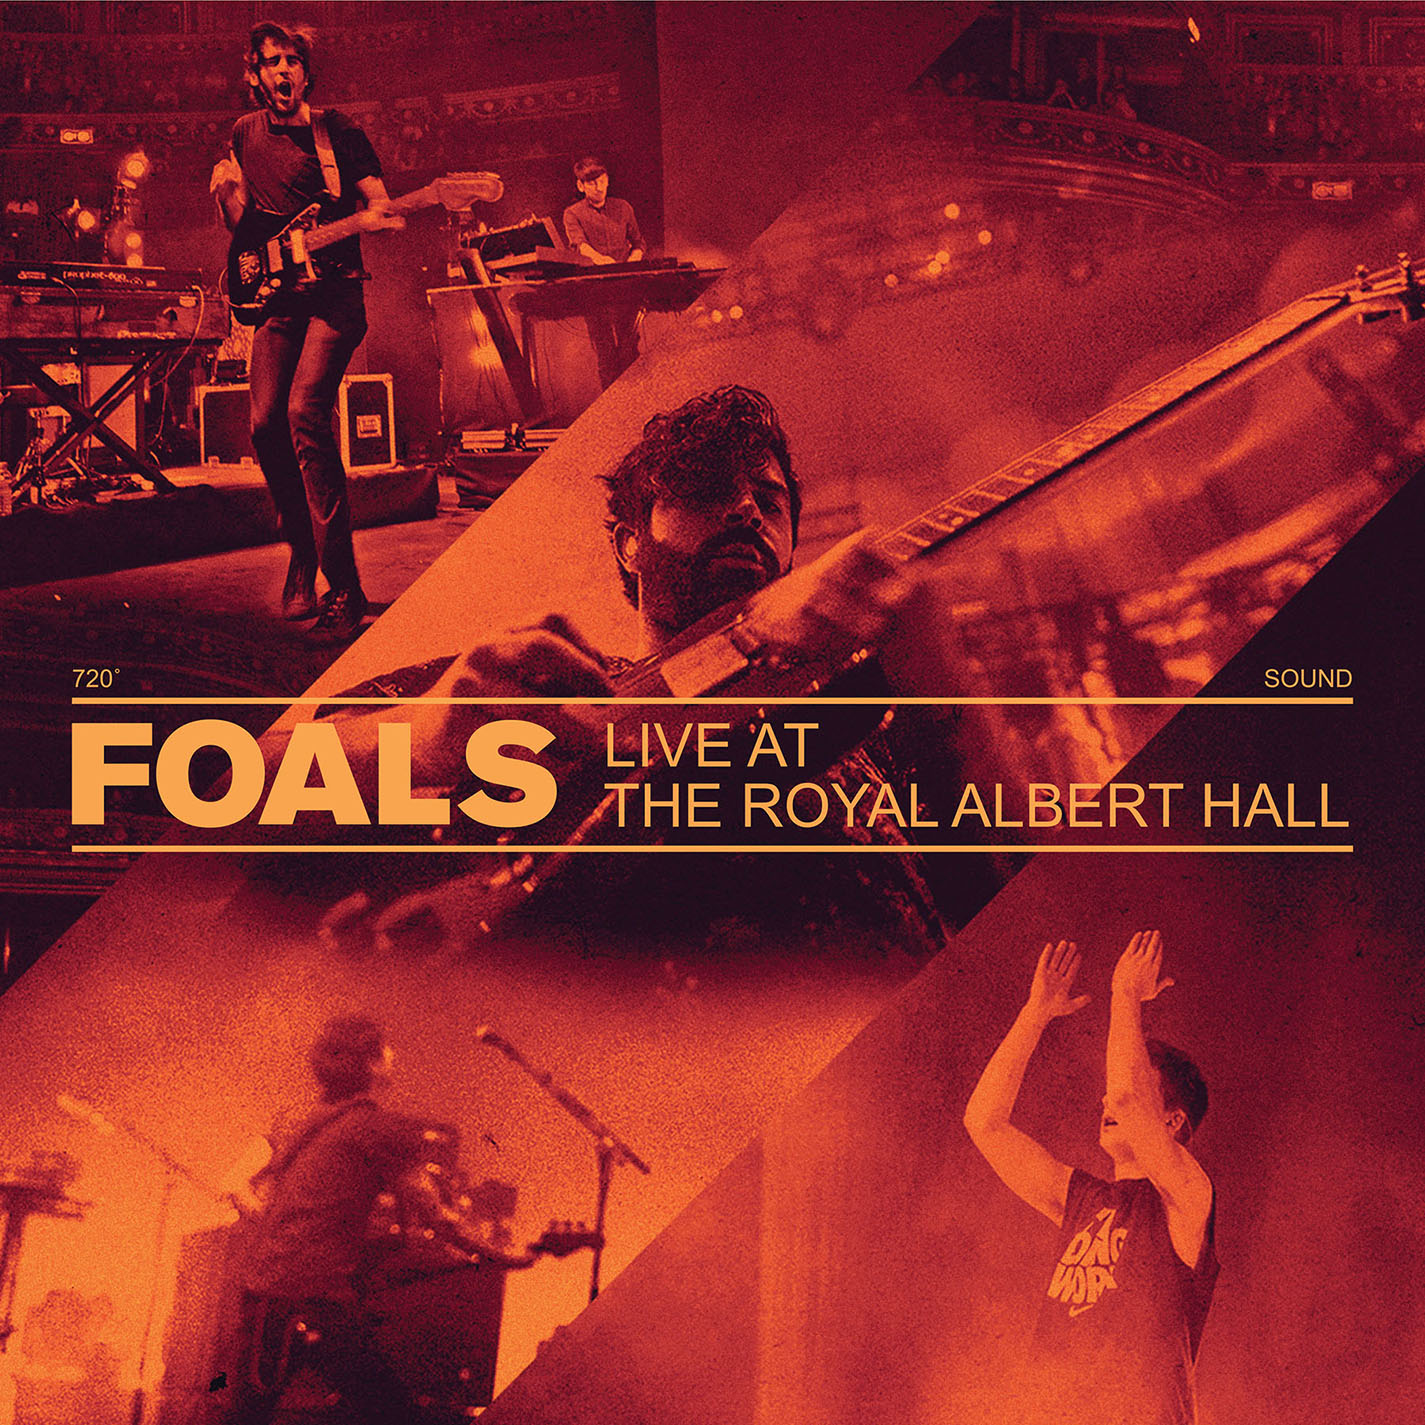 Foals - Live at Royal Albert Hall